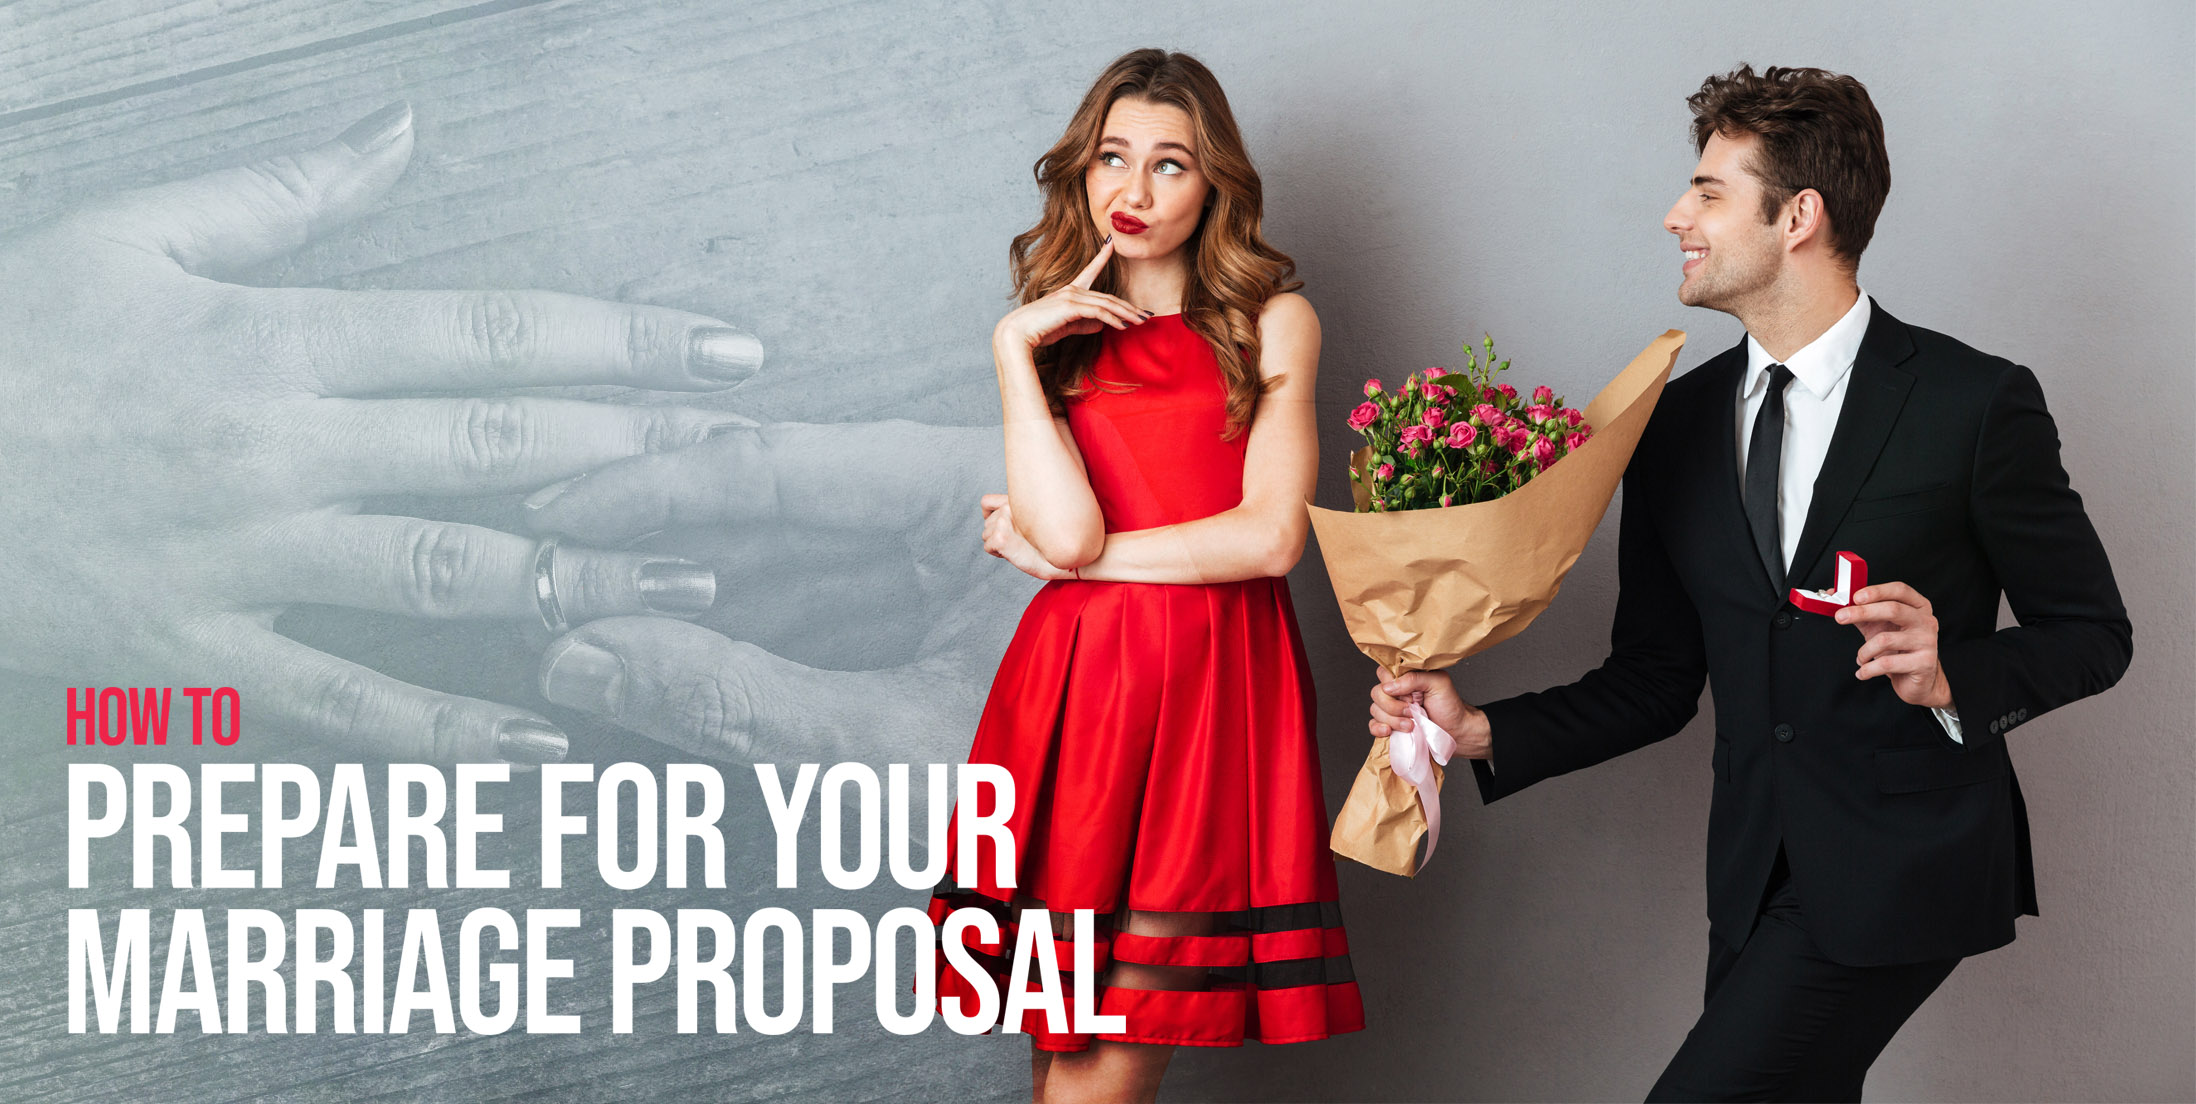 10 Ways to Prepare For Your Proposal